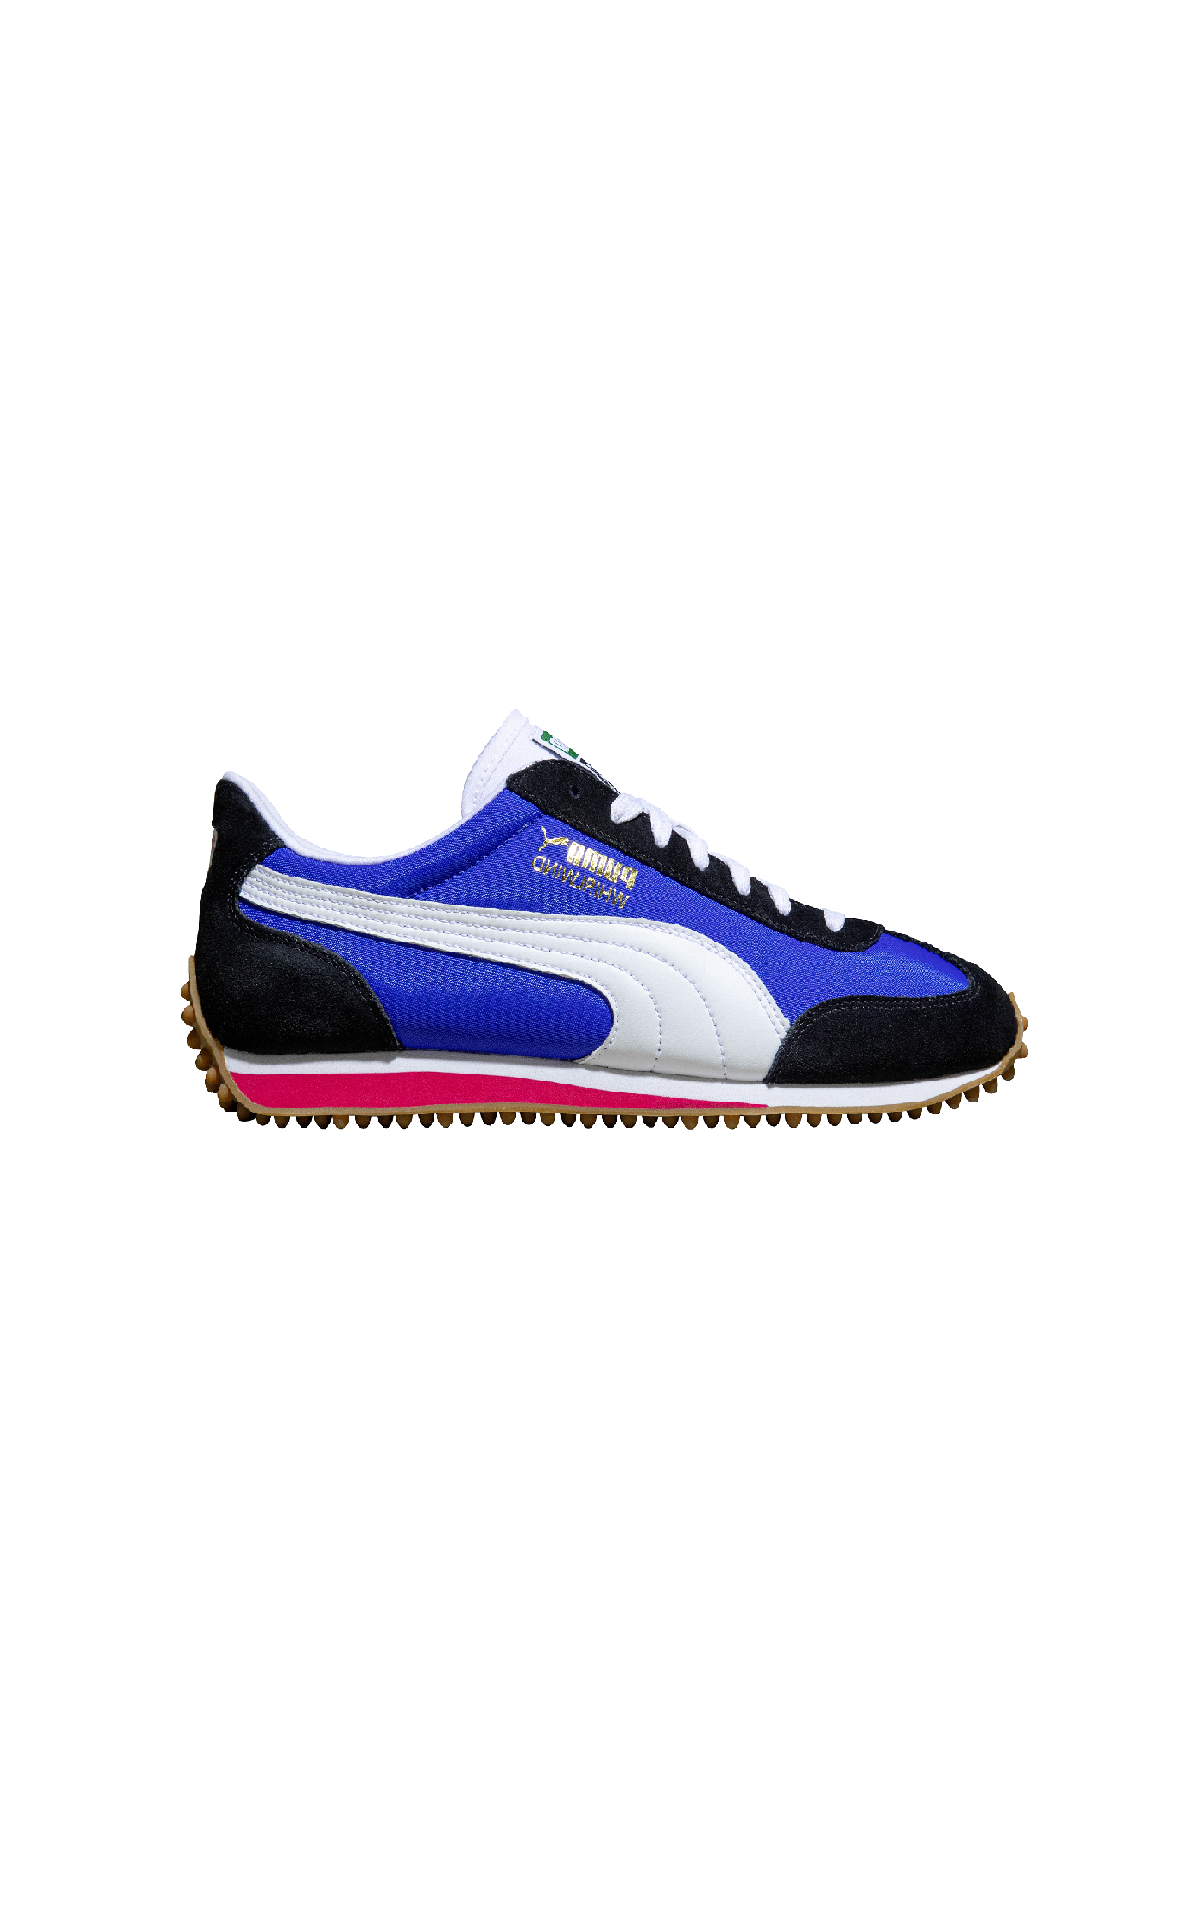 Blue whirlwind sneakers for man Puma